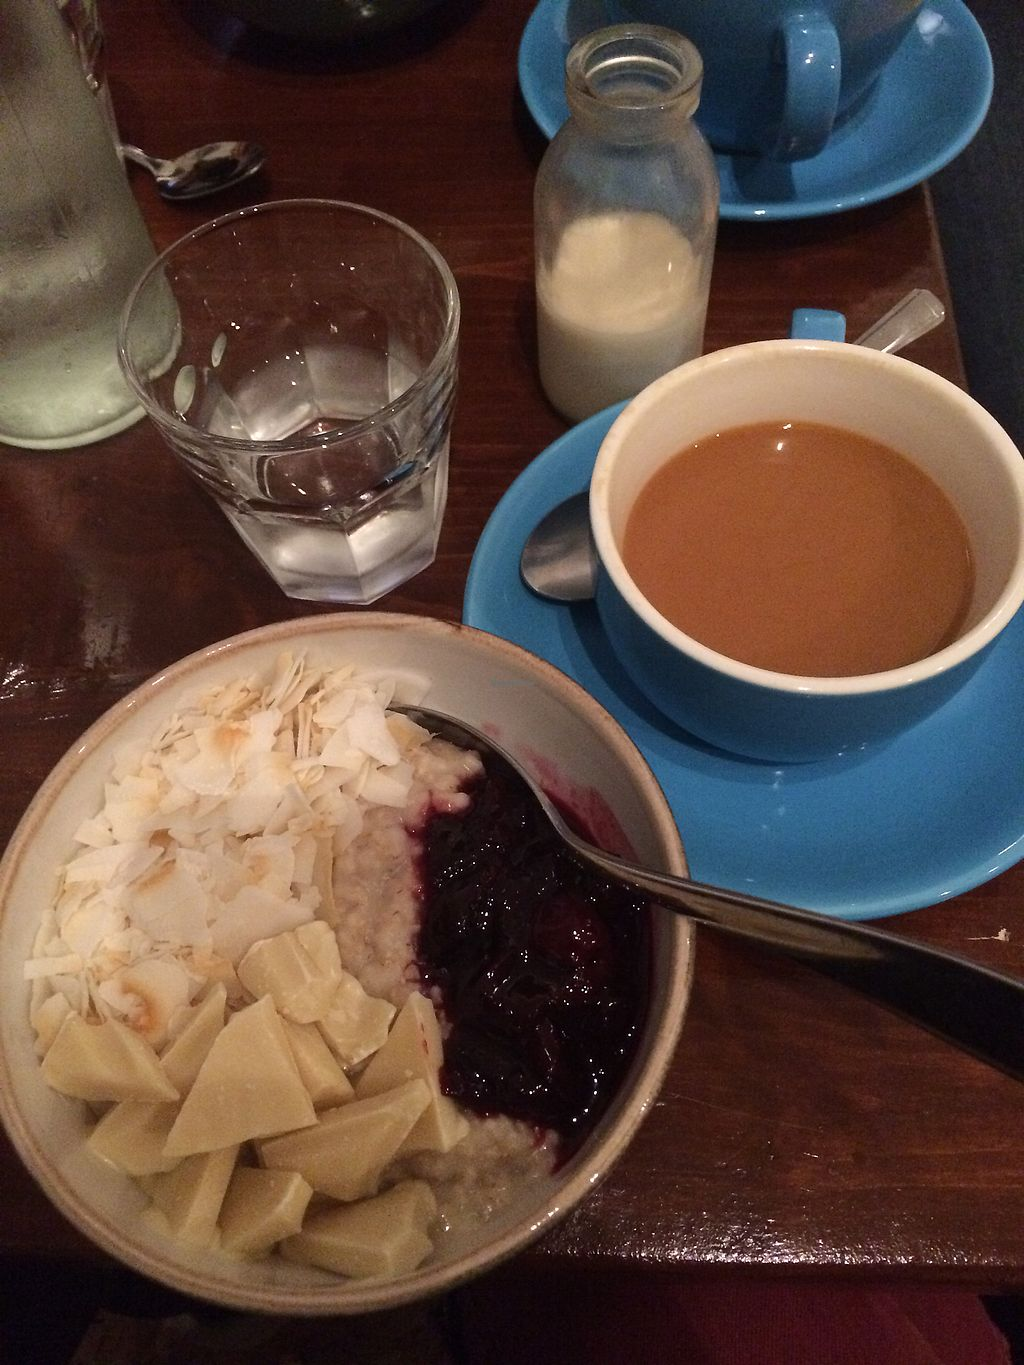 """Photo of Bristol Porridge Project  by <a href=""""/members/profile/KylaJack"""">KylaJack</a> <br/>White chocolate, cherry and coconut porridge!  <br/> March 28, 2018  - <a href='/contact/abuse/image/110917/377365'>Report</a>"""